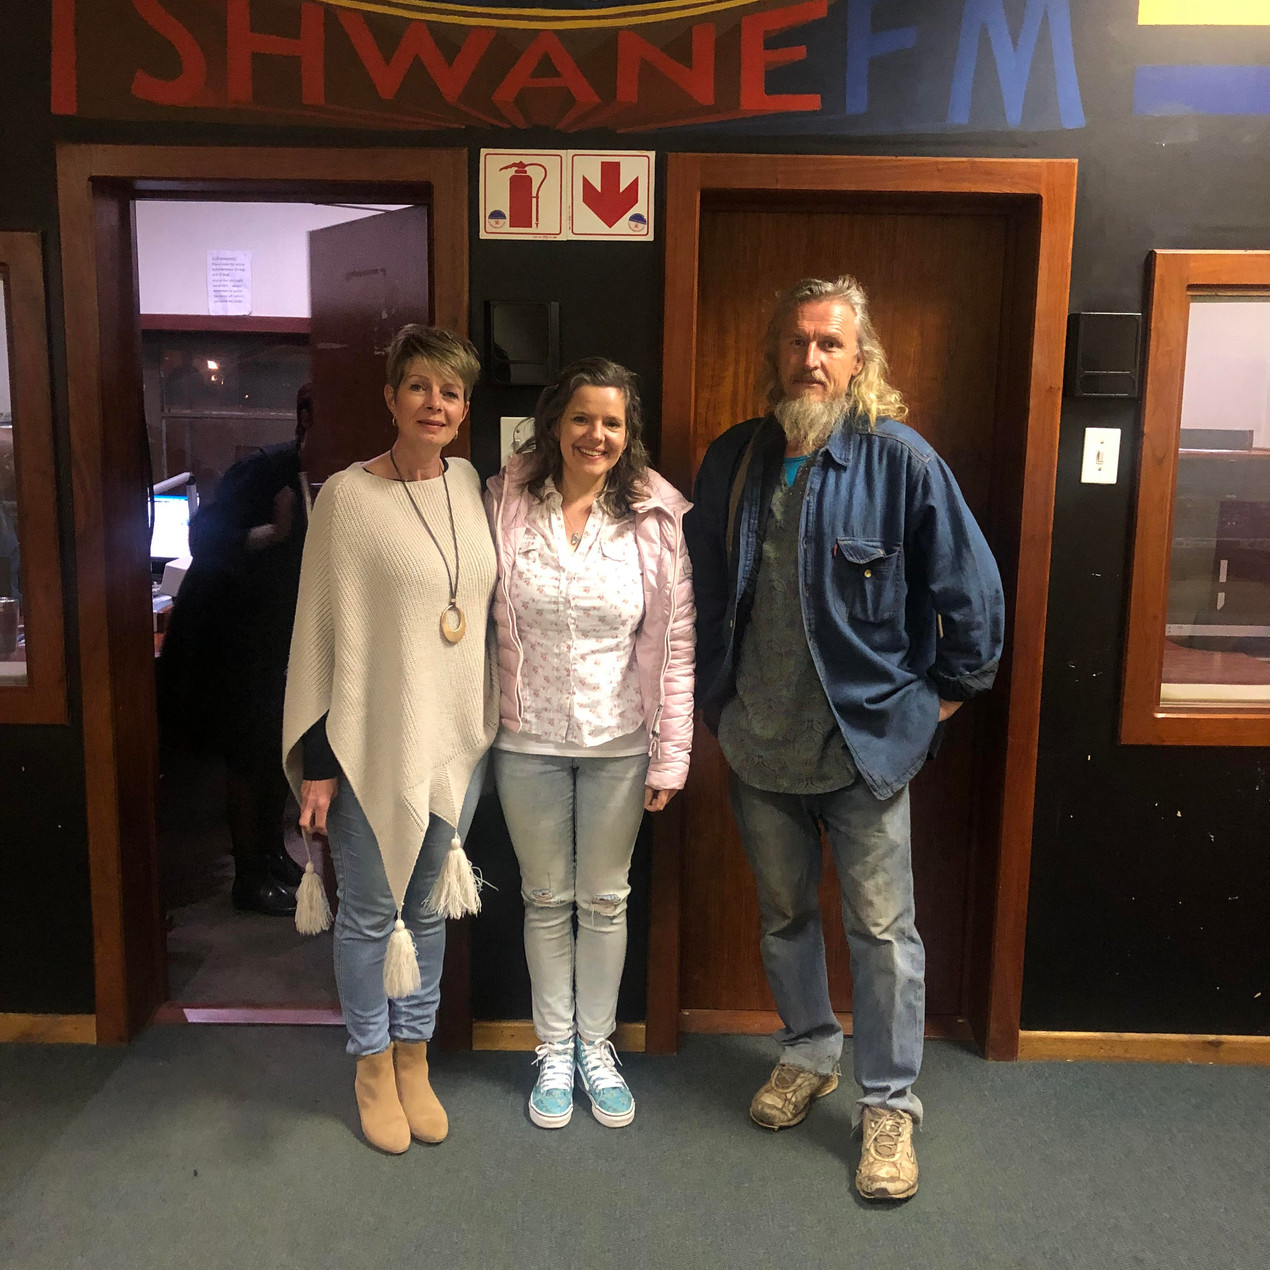 Tshwane FM - radio waves to heal our rivers and oceans